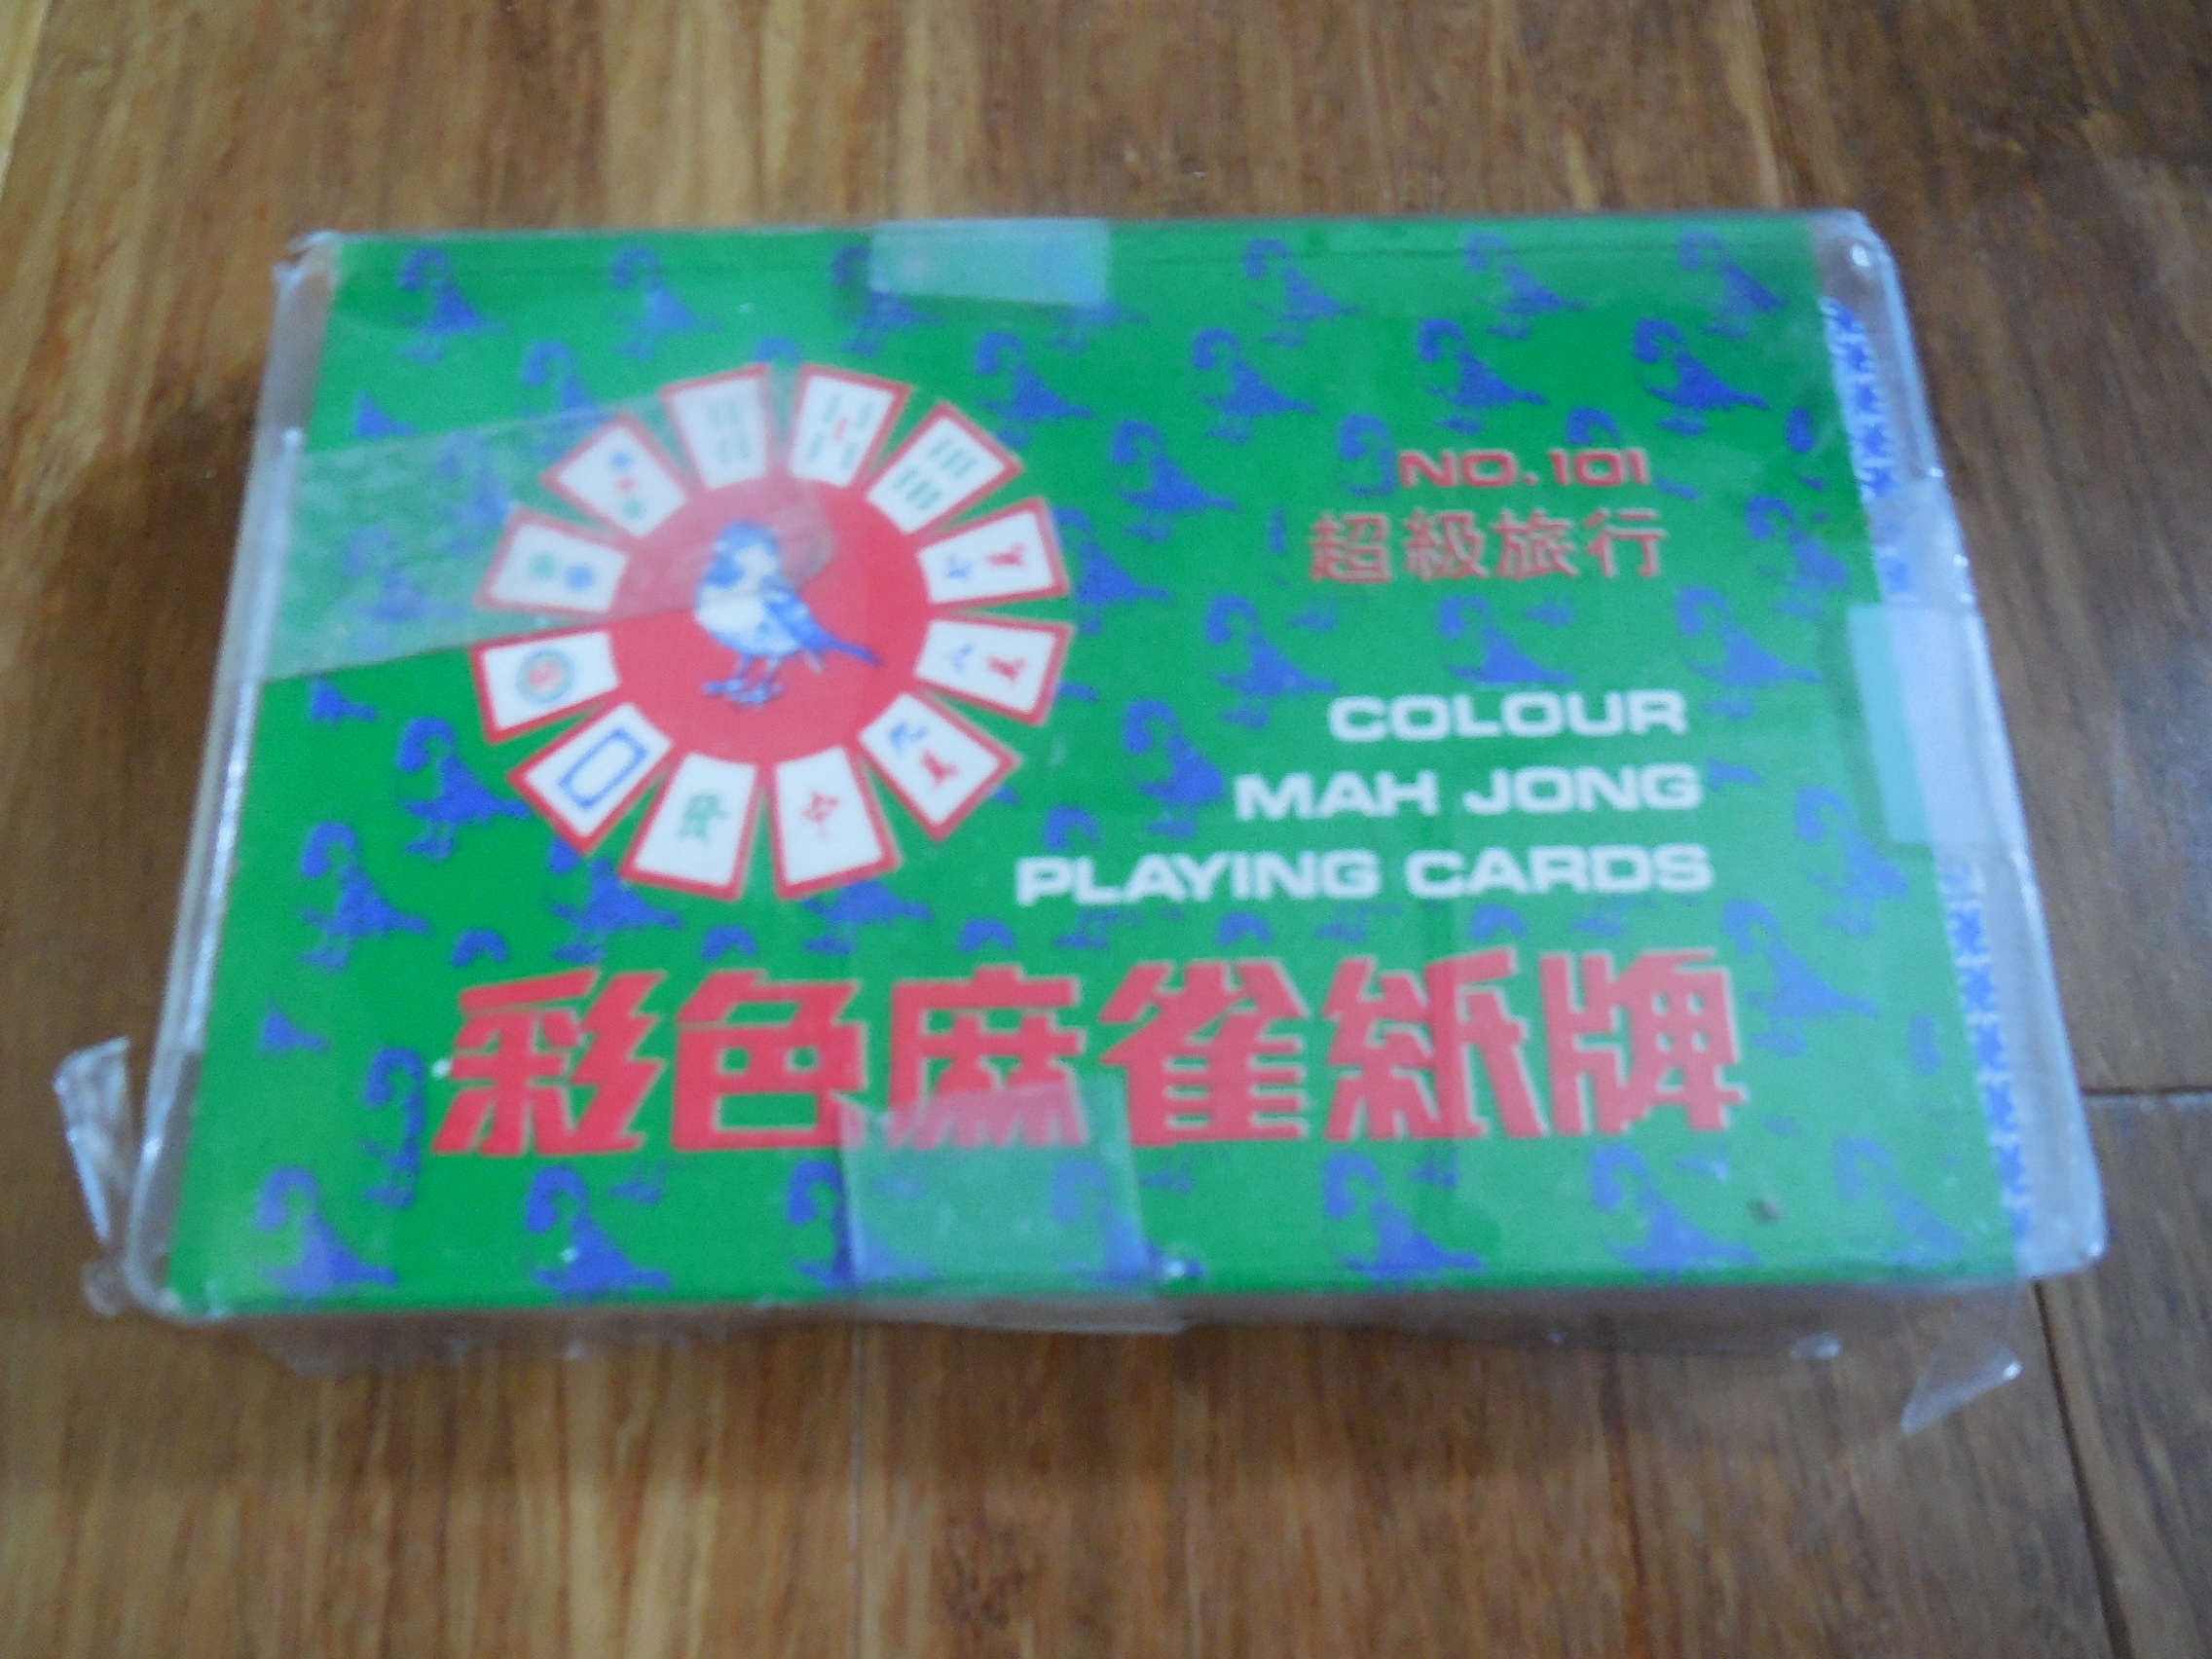 Image for Colour Mah Jong Playing Cards (No. 101)